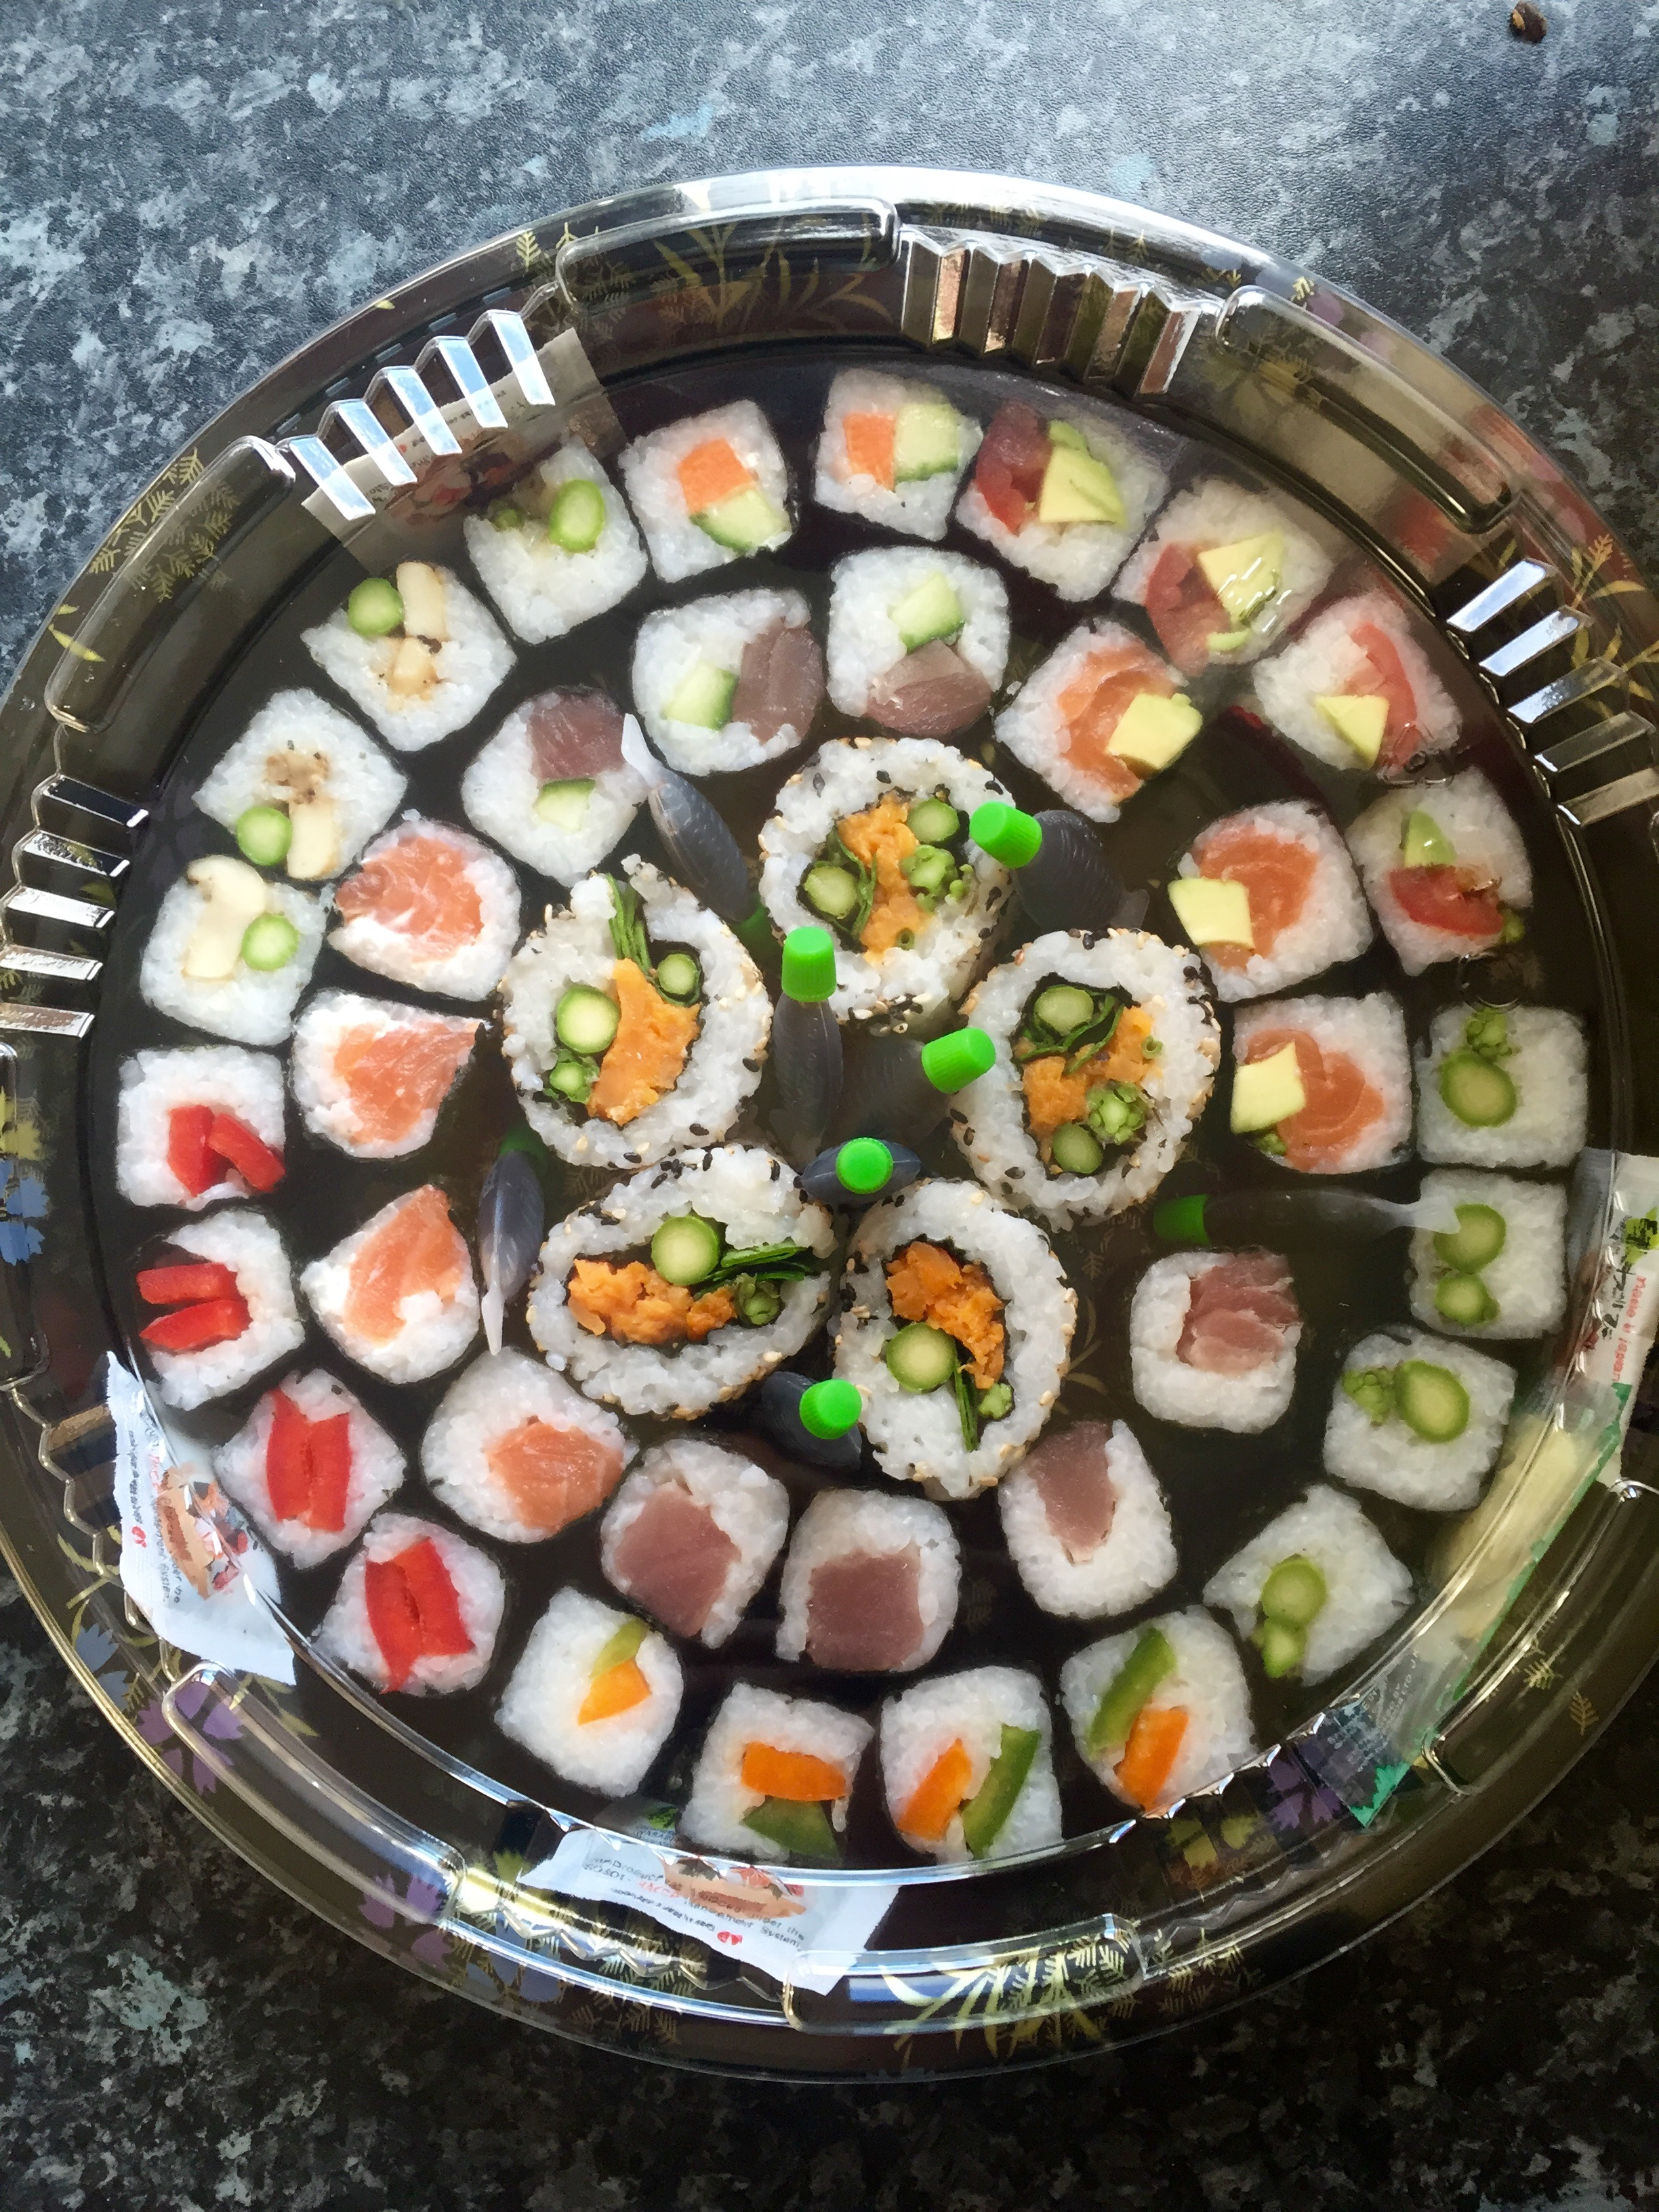 THE CLASSIC MIXED SUSHI BOX - £25   Contains a mix of veg and fish based sushi.